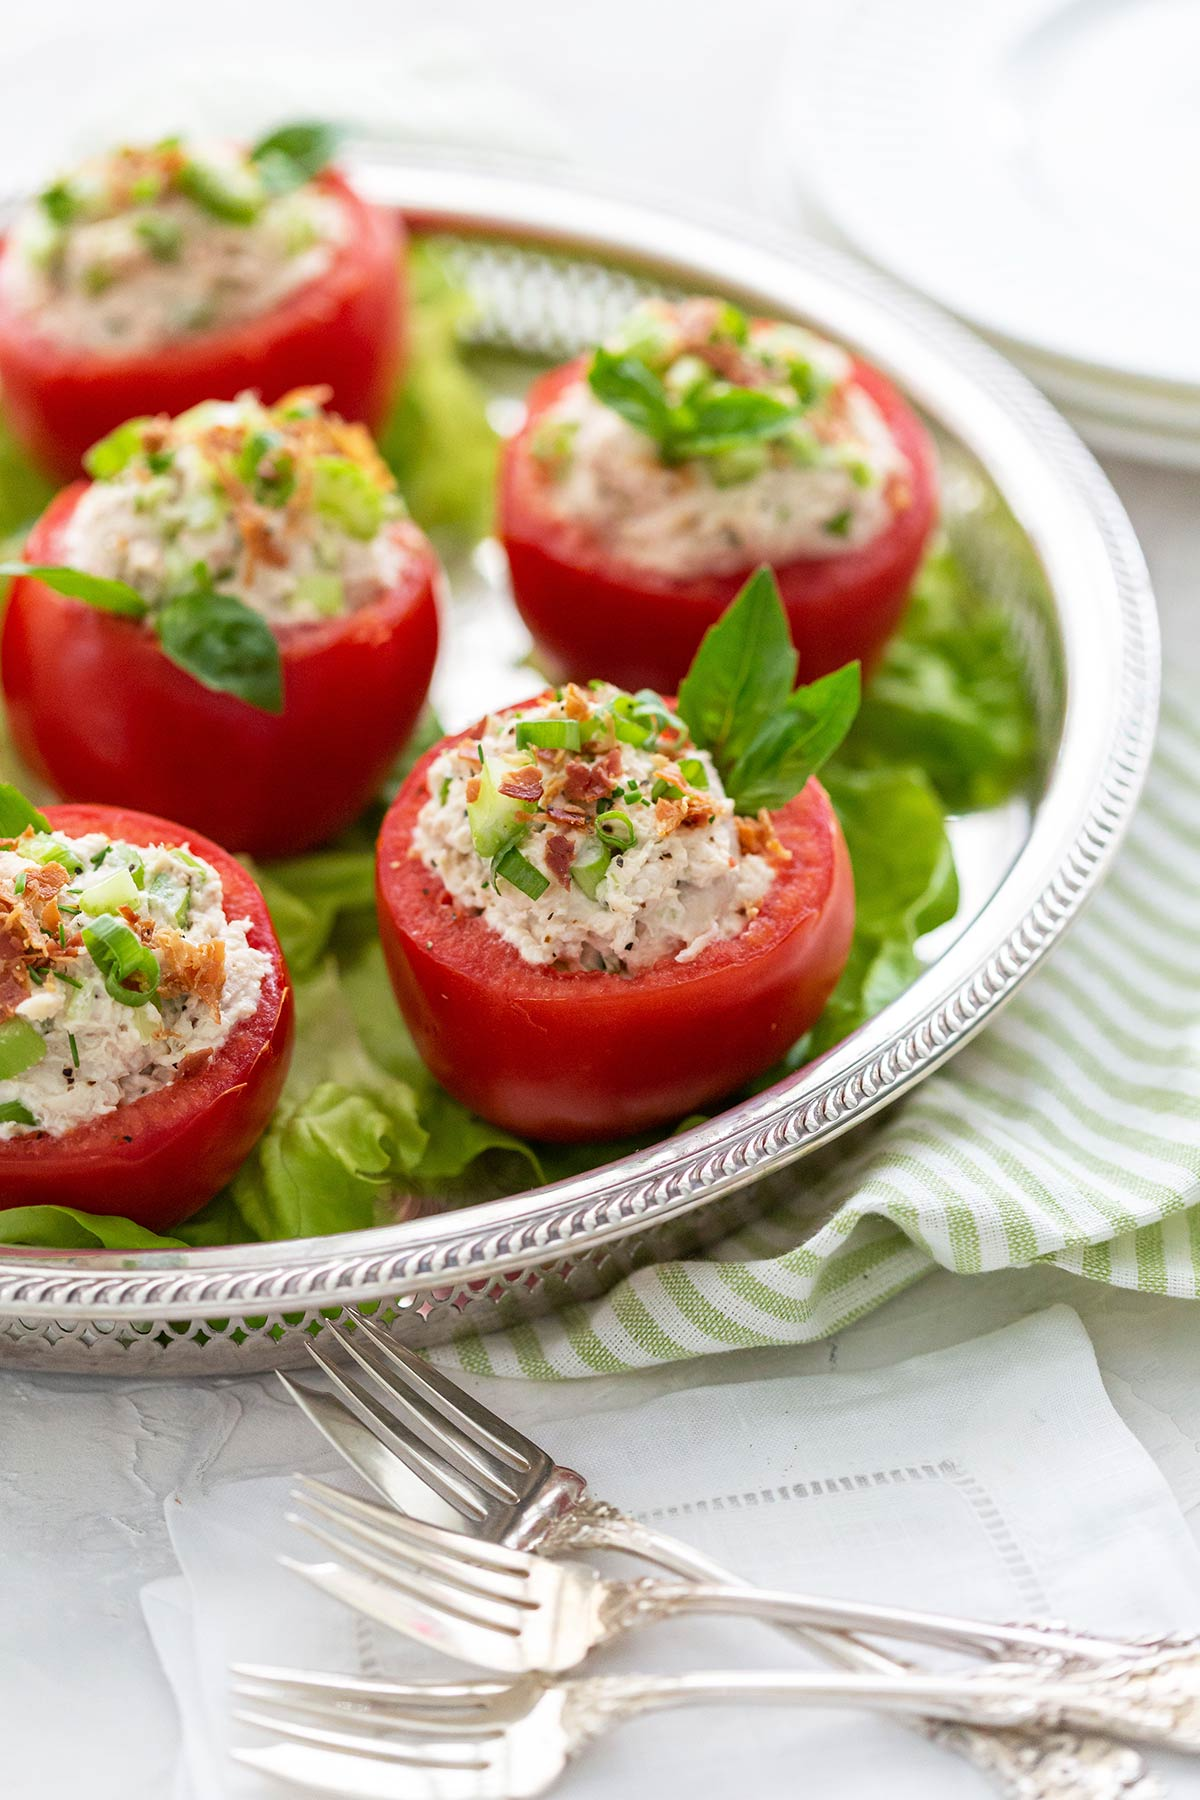 Chicken Salad in a Tomato